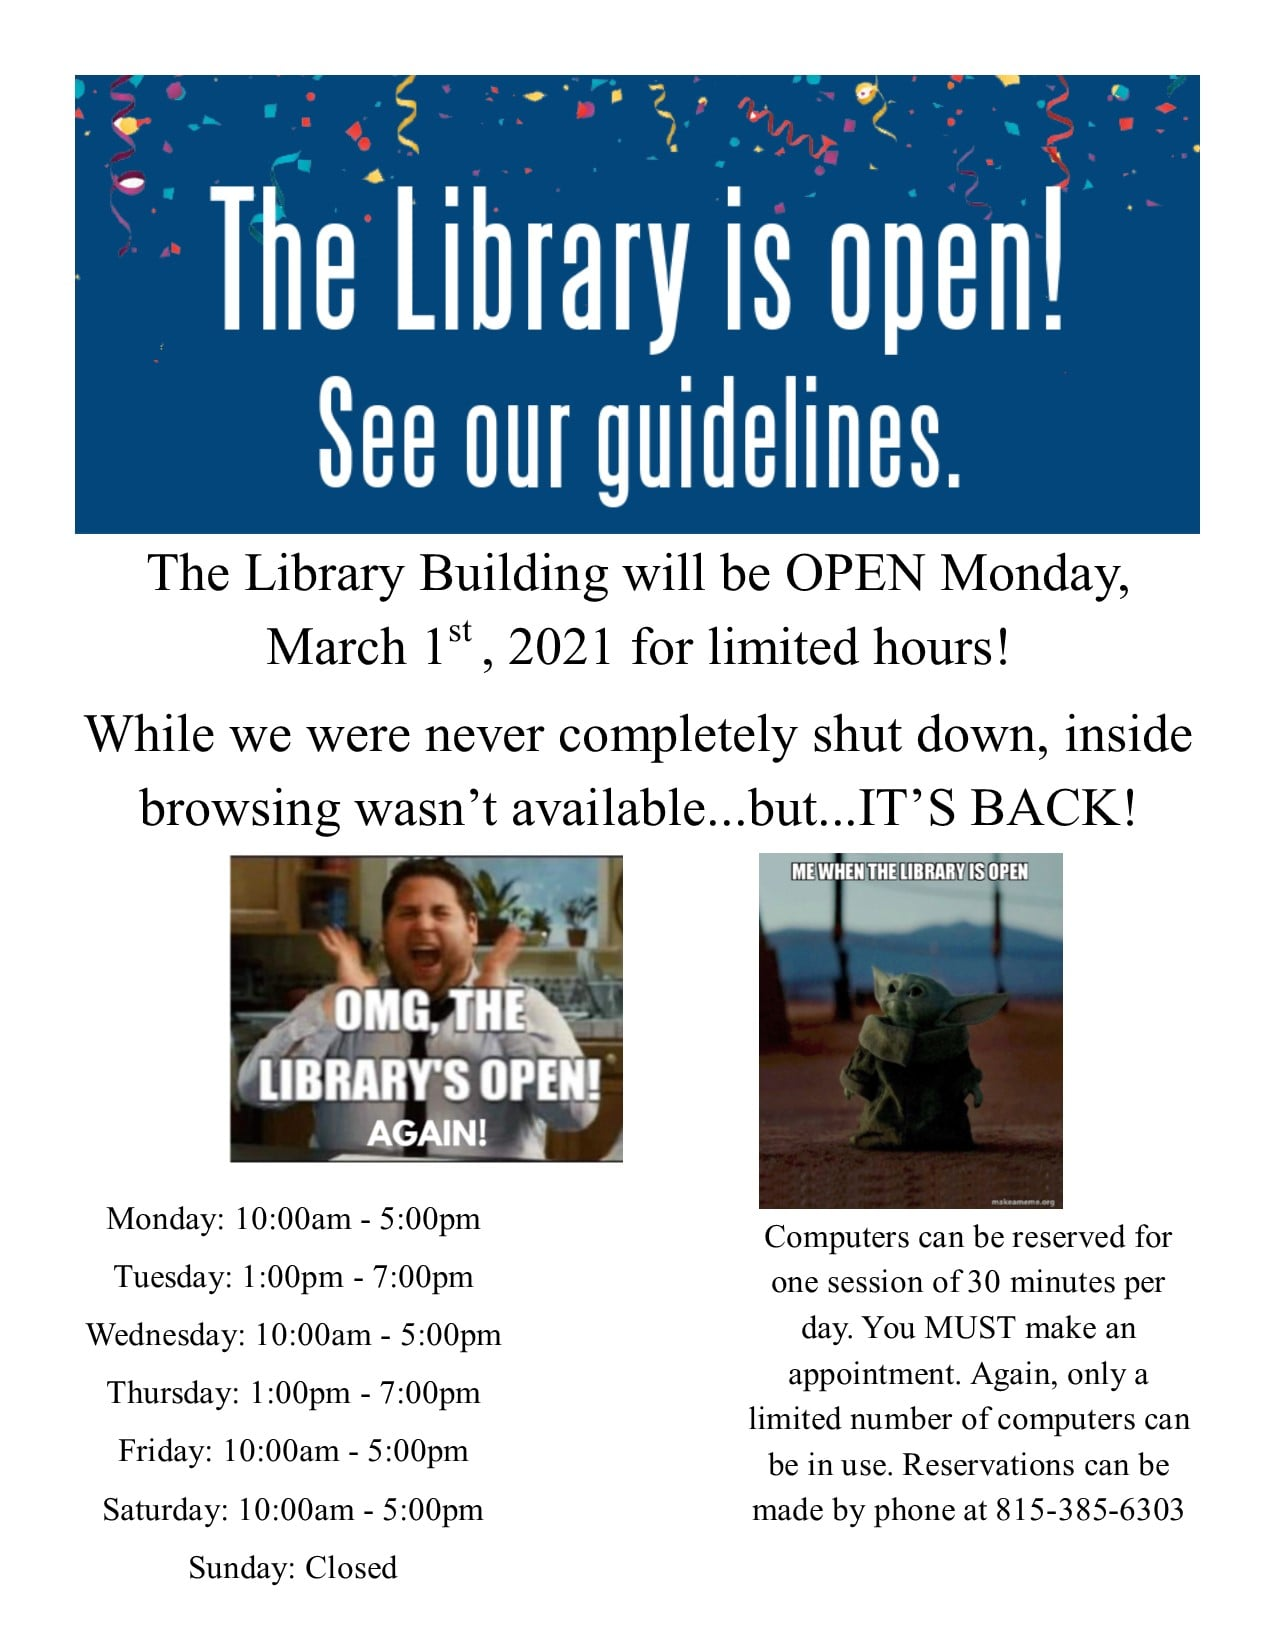 Poster 1 detailing the library's reopening plan for Monday March 1st 2021